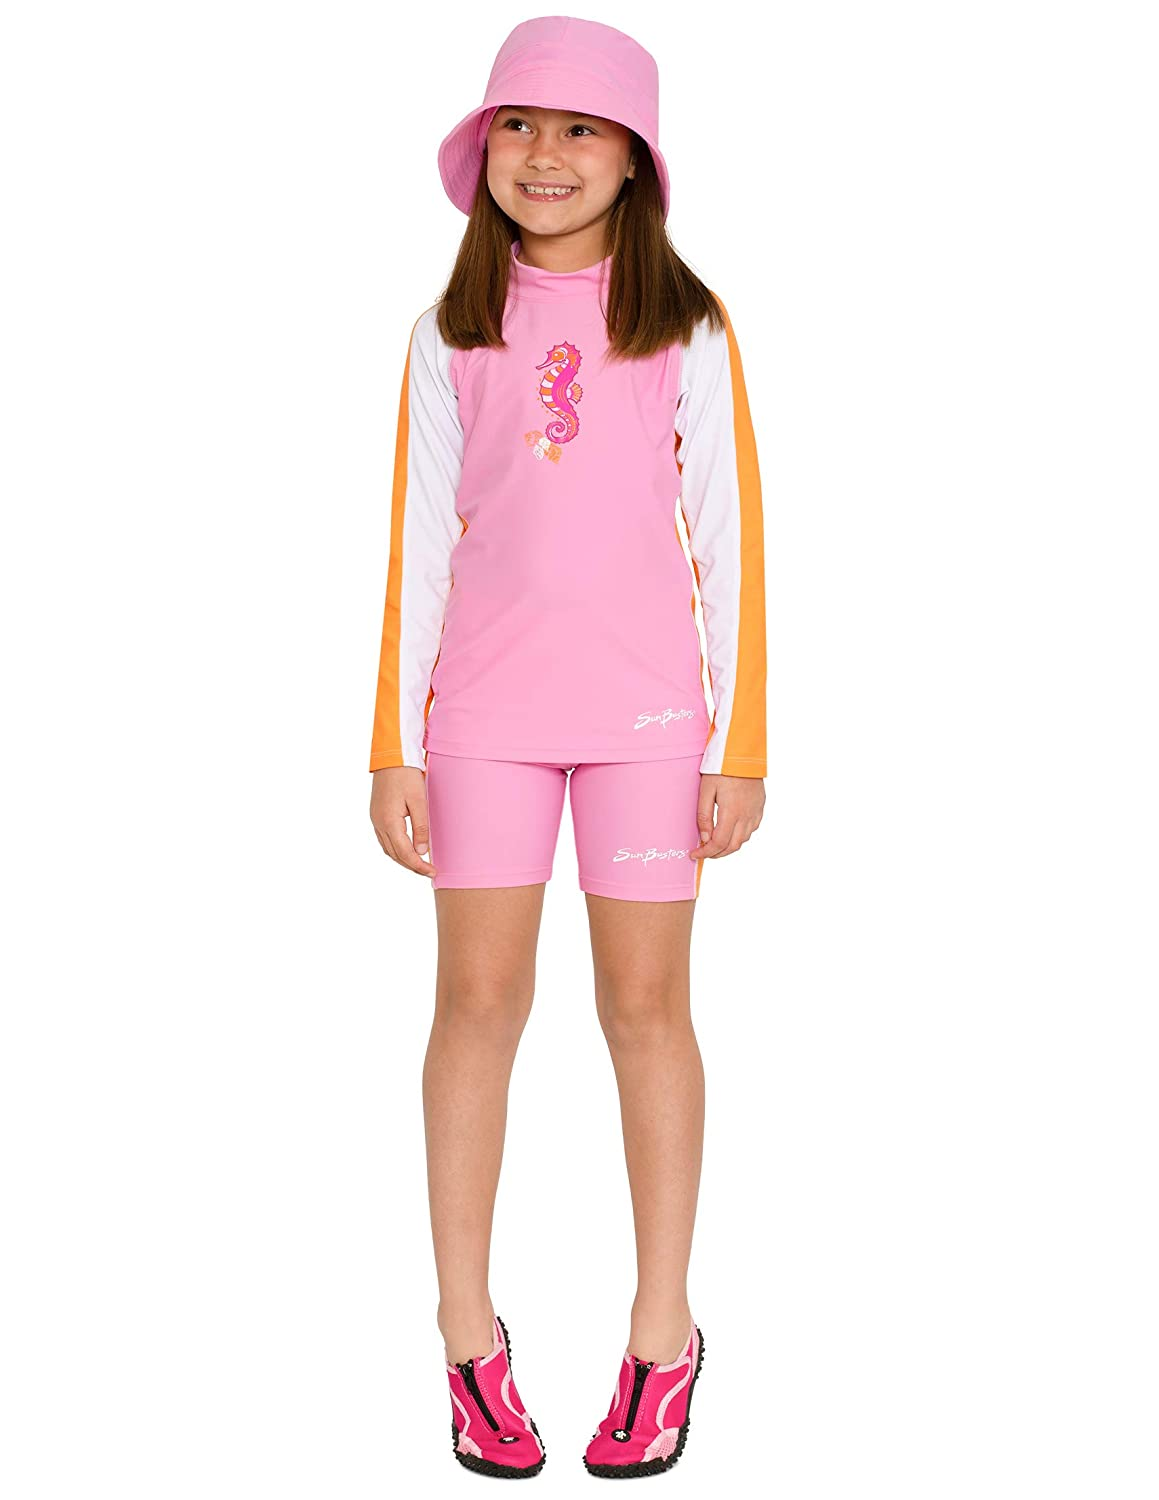 UPF 50 Sun Protection SunBusters Girls Two-Piece Long Sleeve Swimsuit Set